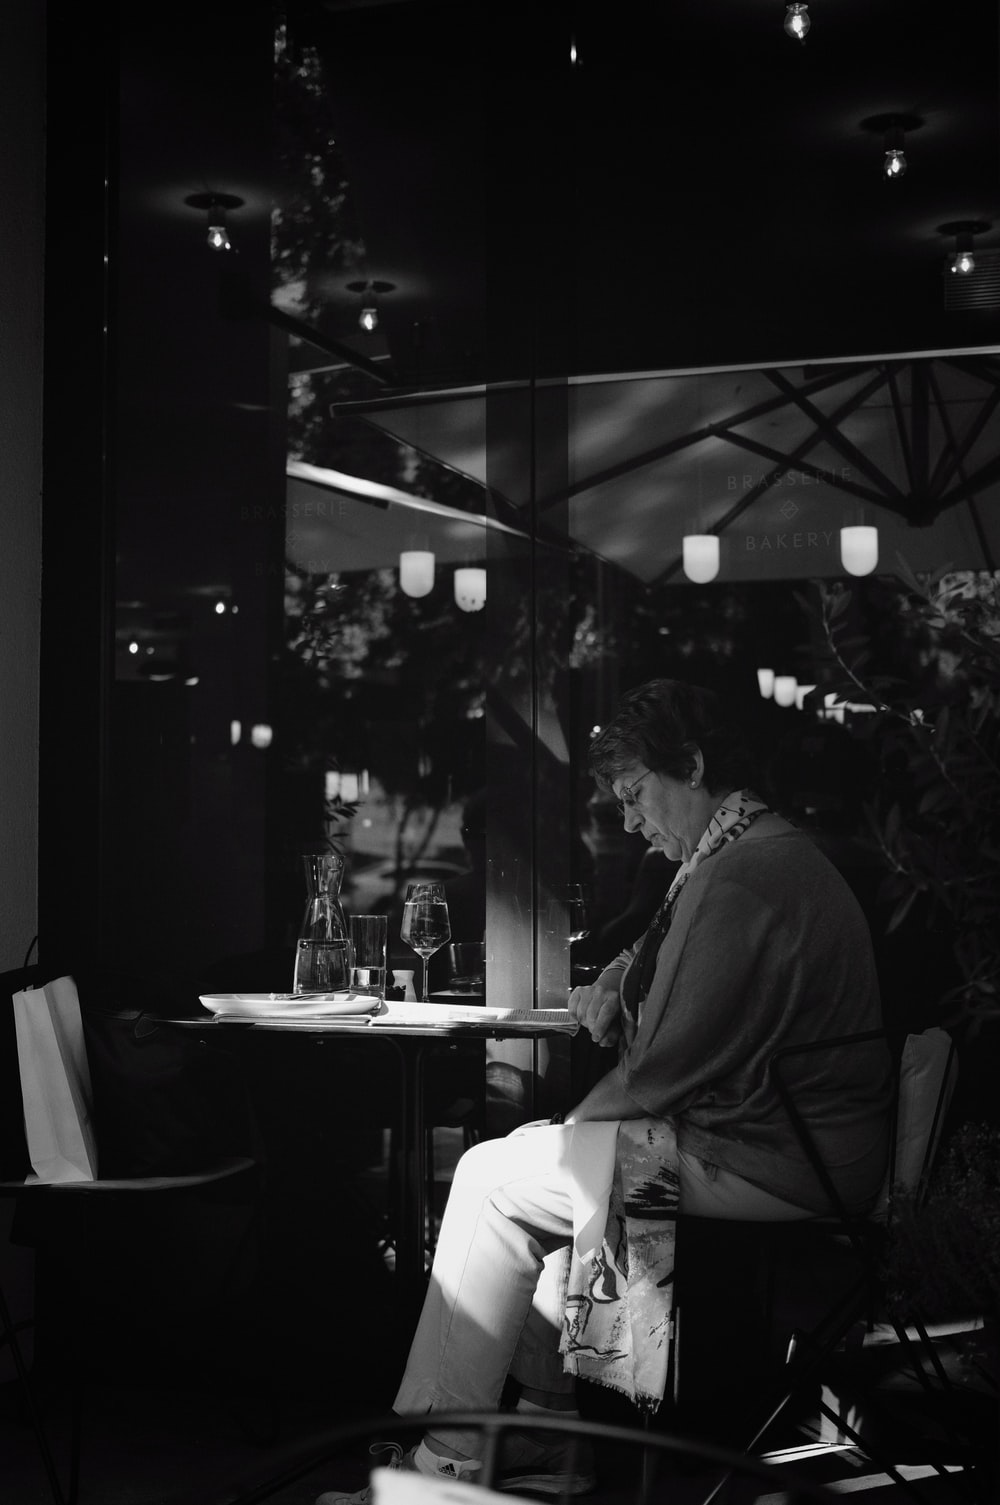 man sitting on chair with table